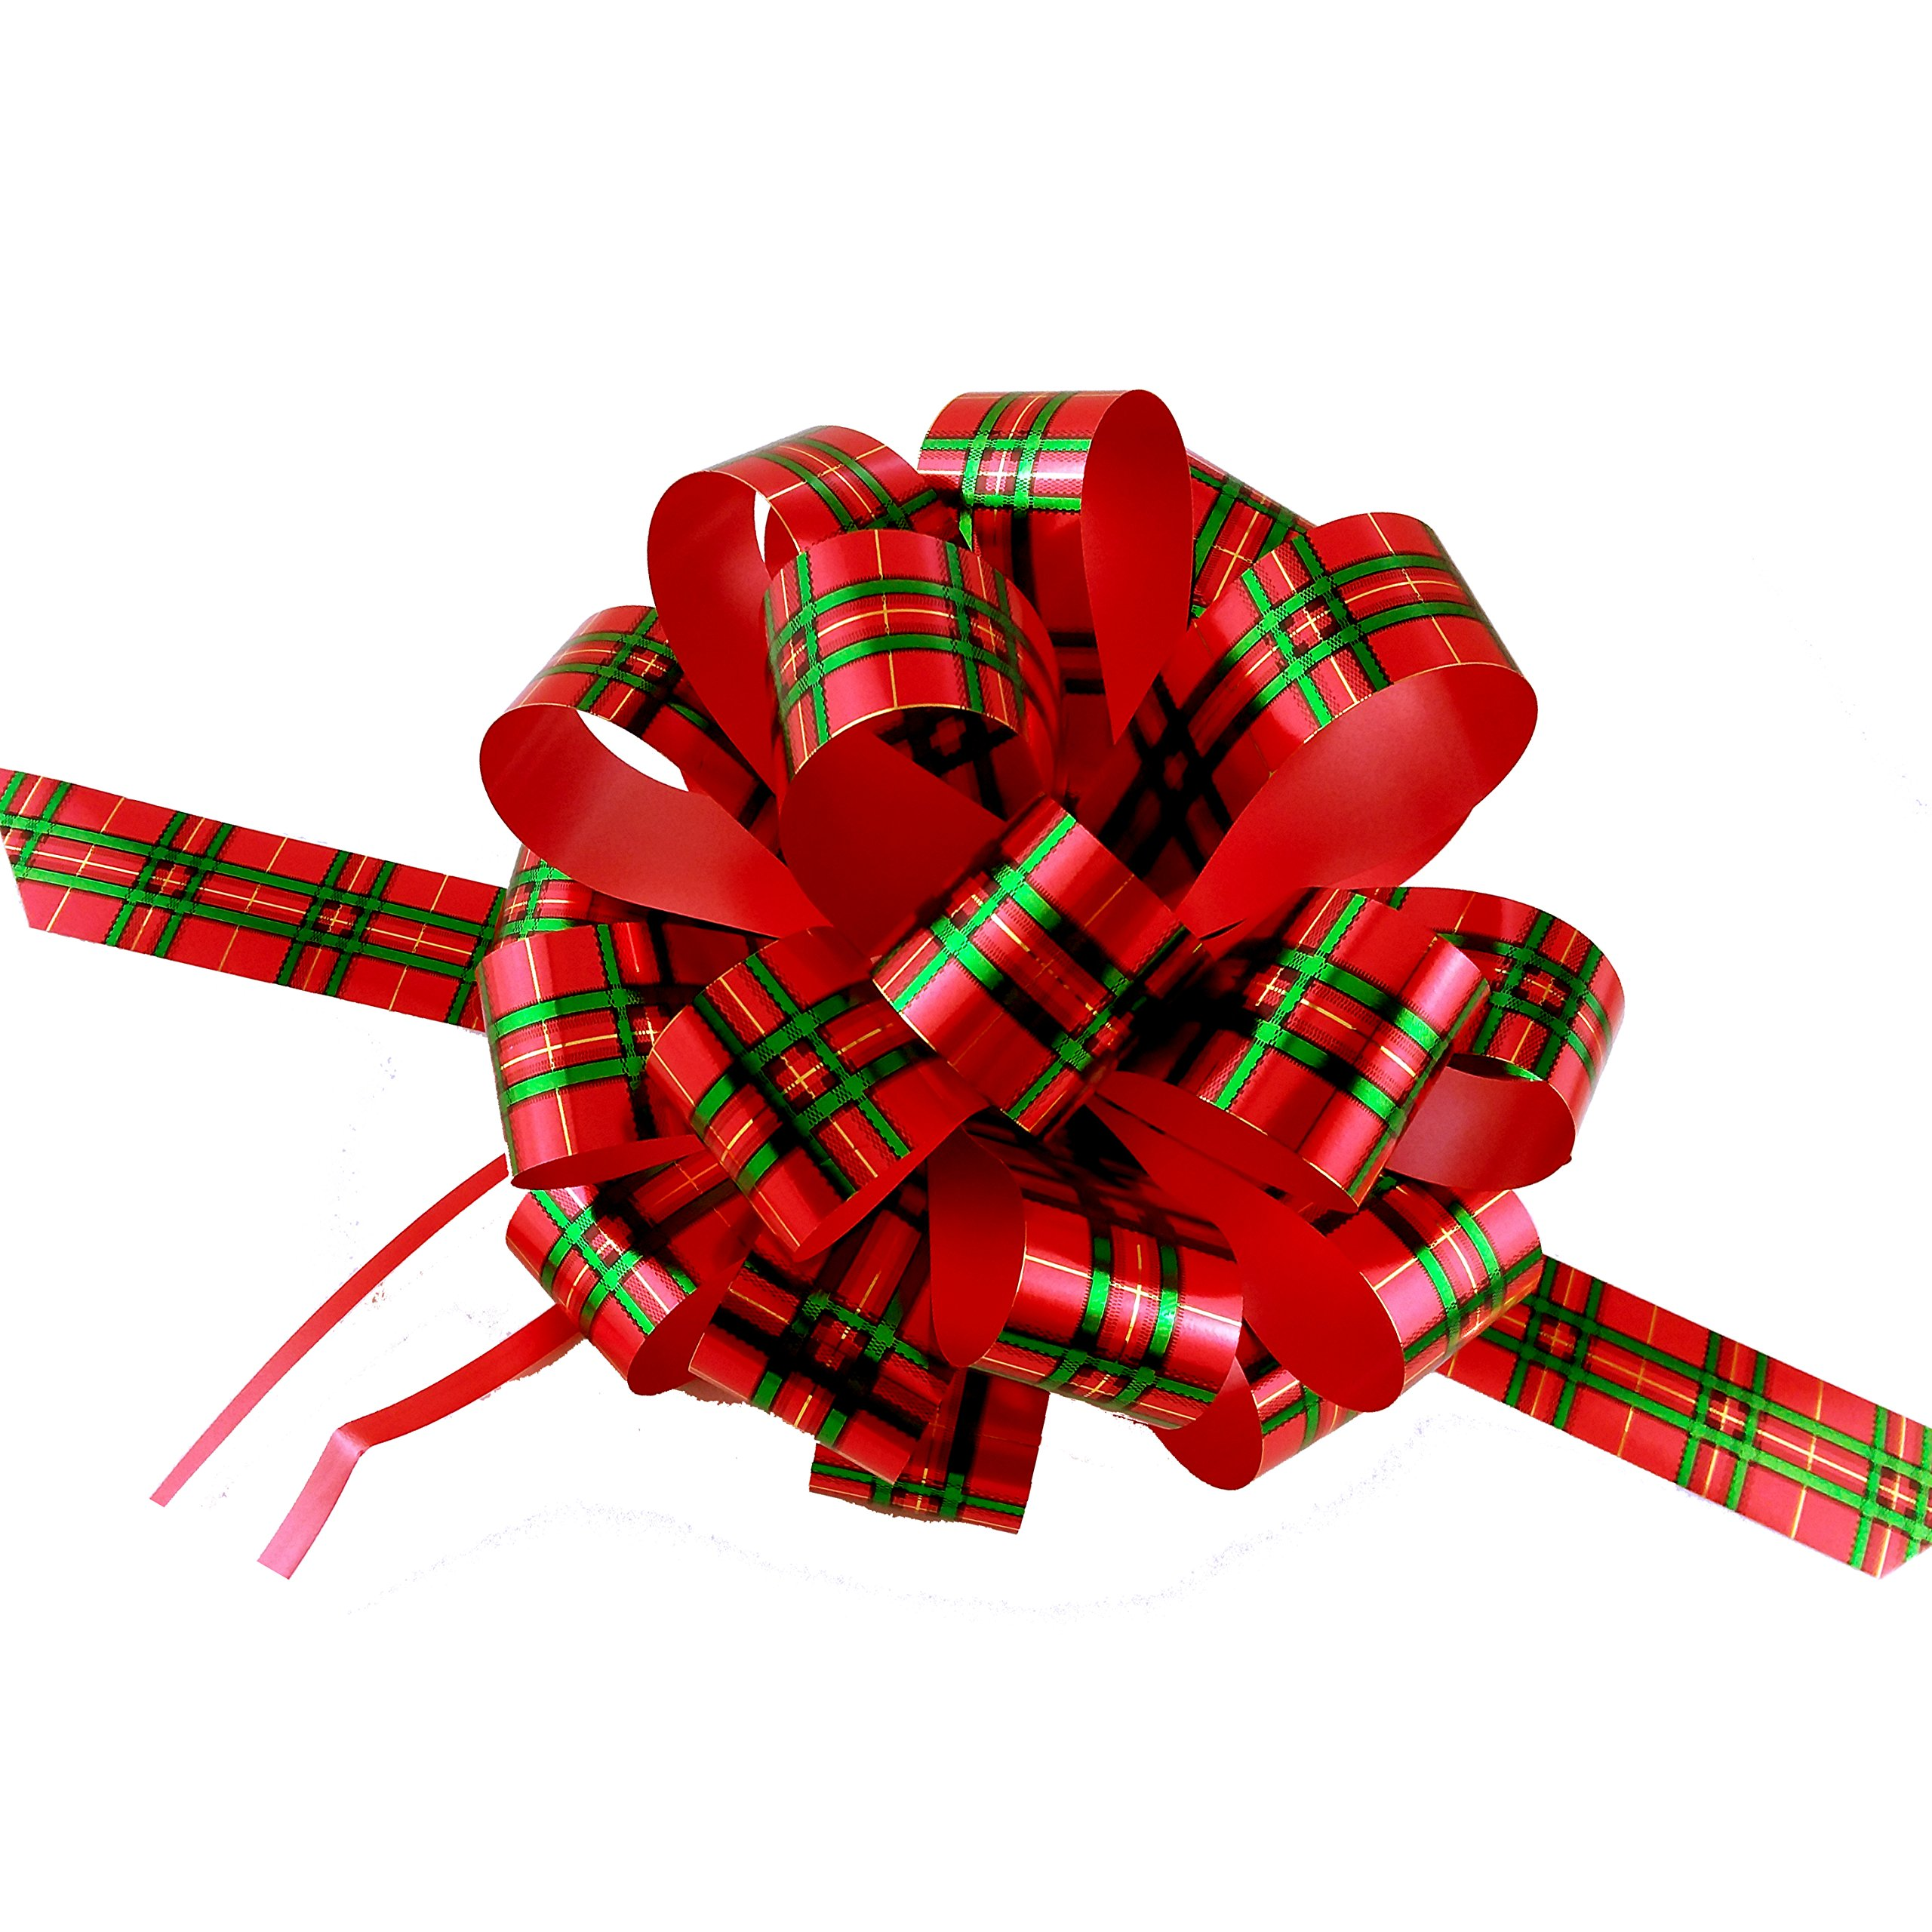 """Amazon.com: Large Metallic Red & Green Pull Bows - 8"""" Wide ..."""